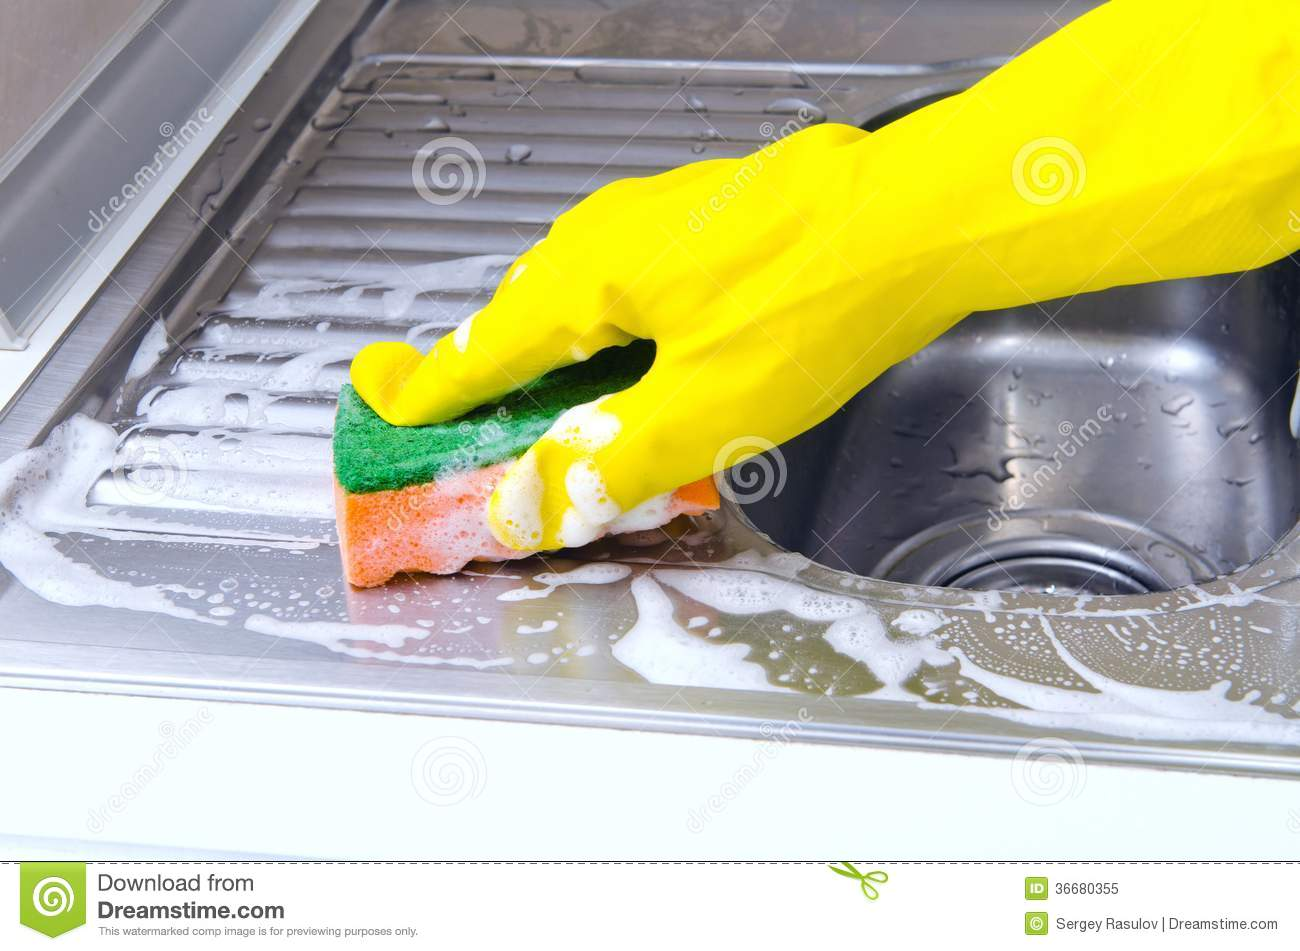 Cleaning the kitchen sink & Cleaning the kitchen sink stock image. Image of shiny - 36680355